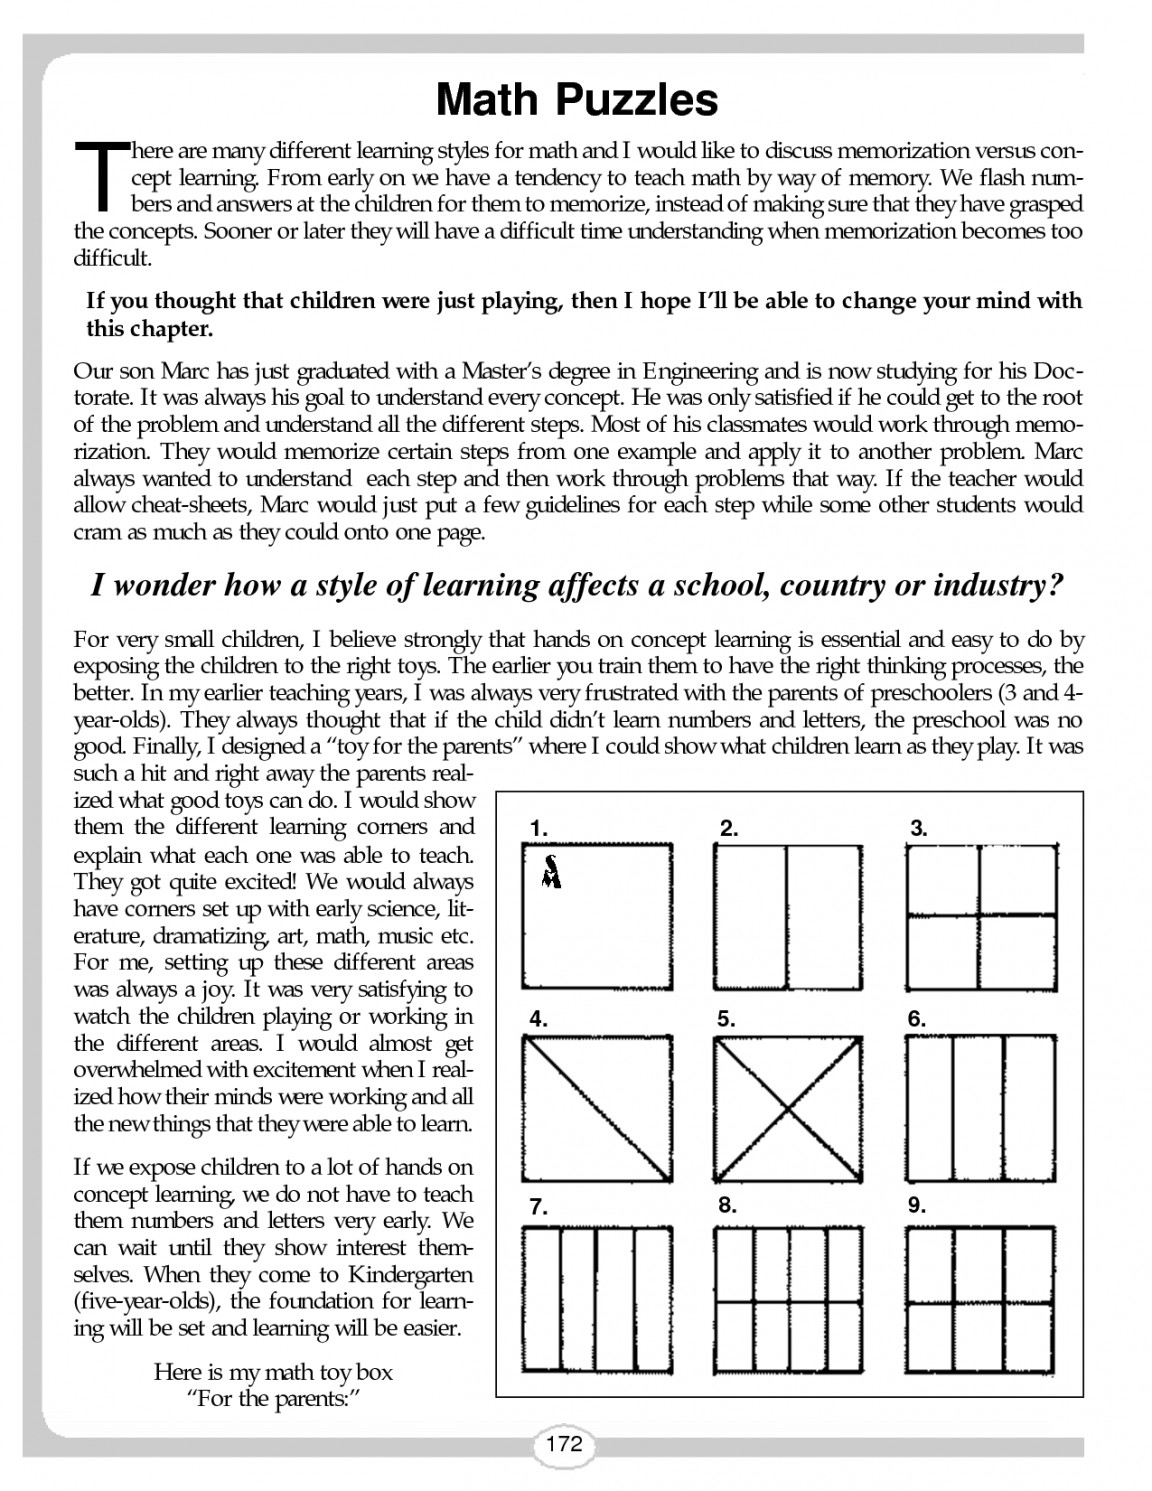 Free Printable Logic Puzzles For High School Students | Free Printables - Printable Math Puzzles For High School